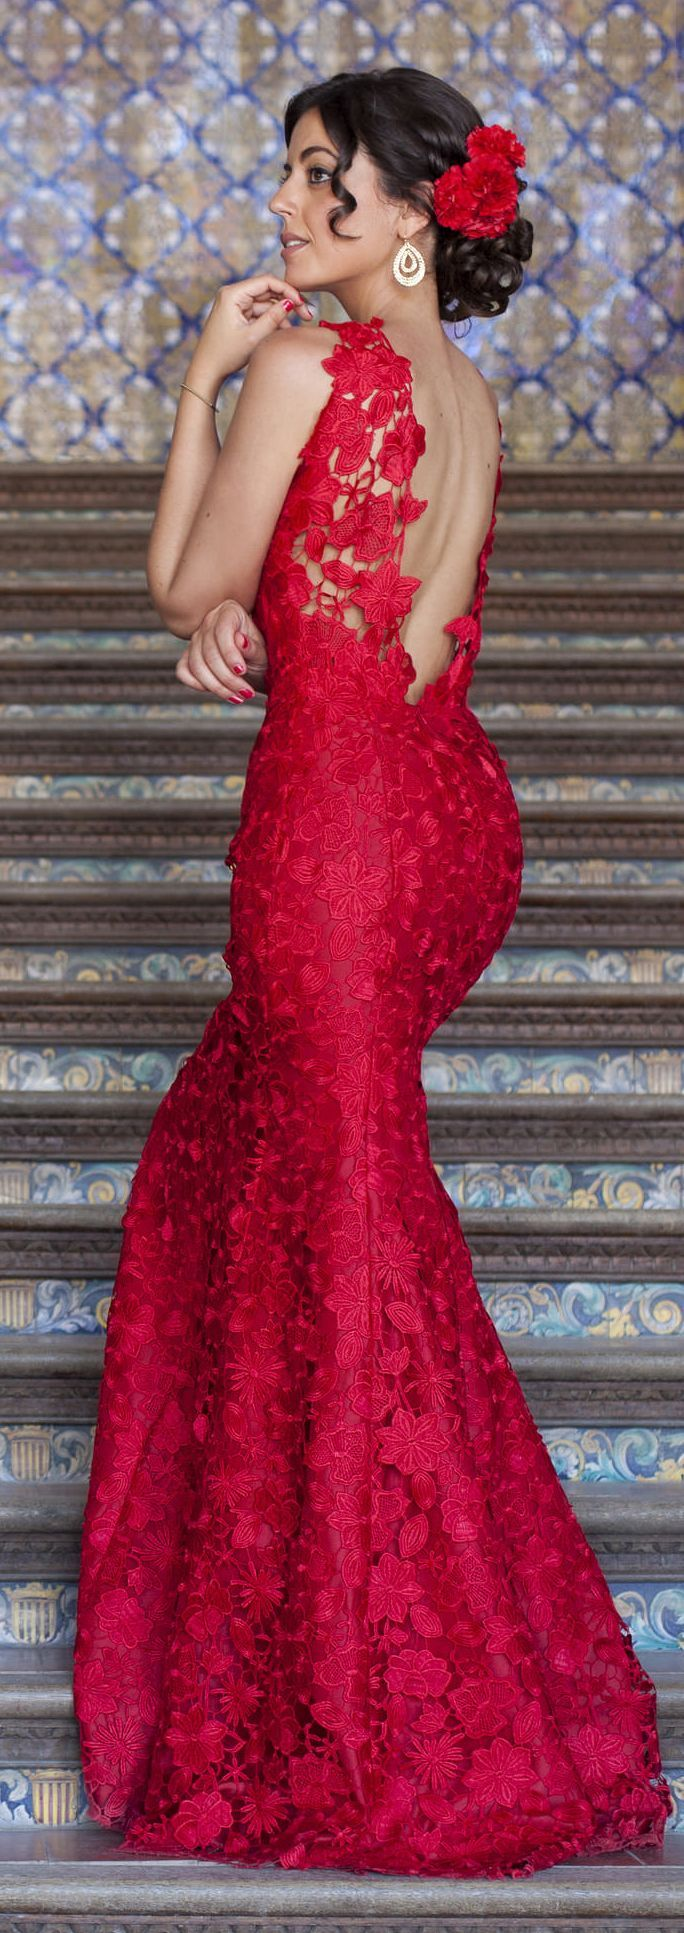 Red Andalusian Gown Cocktail Style by 1sillaparamibolso